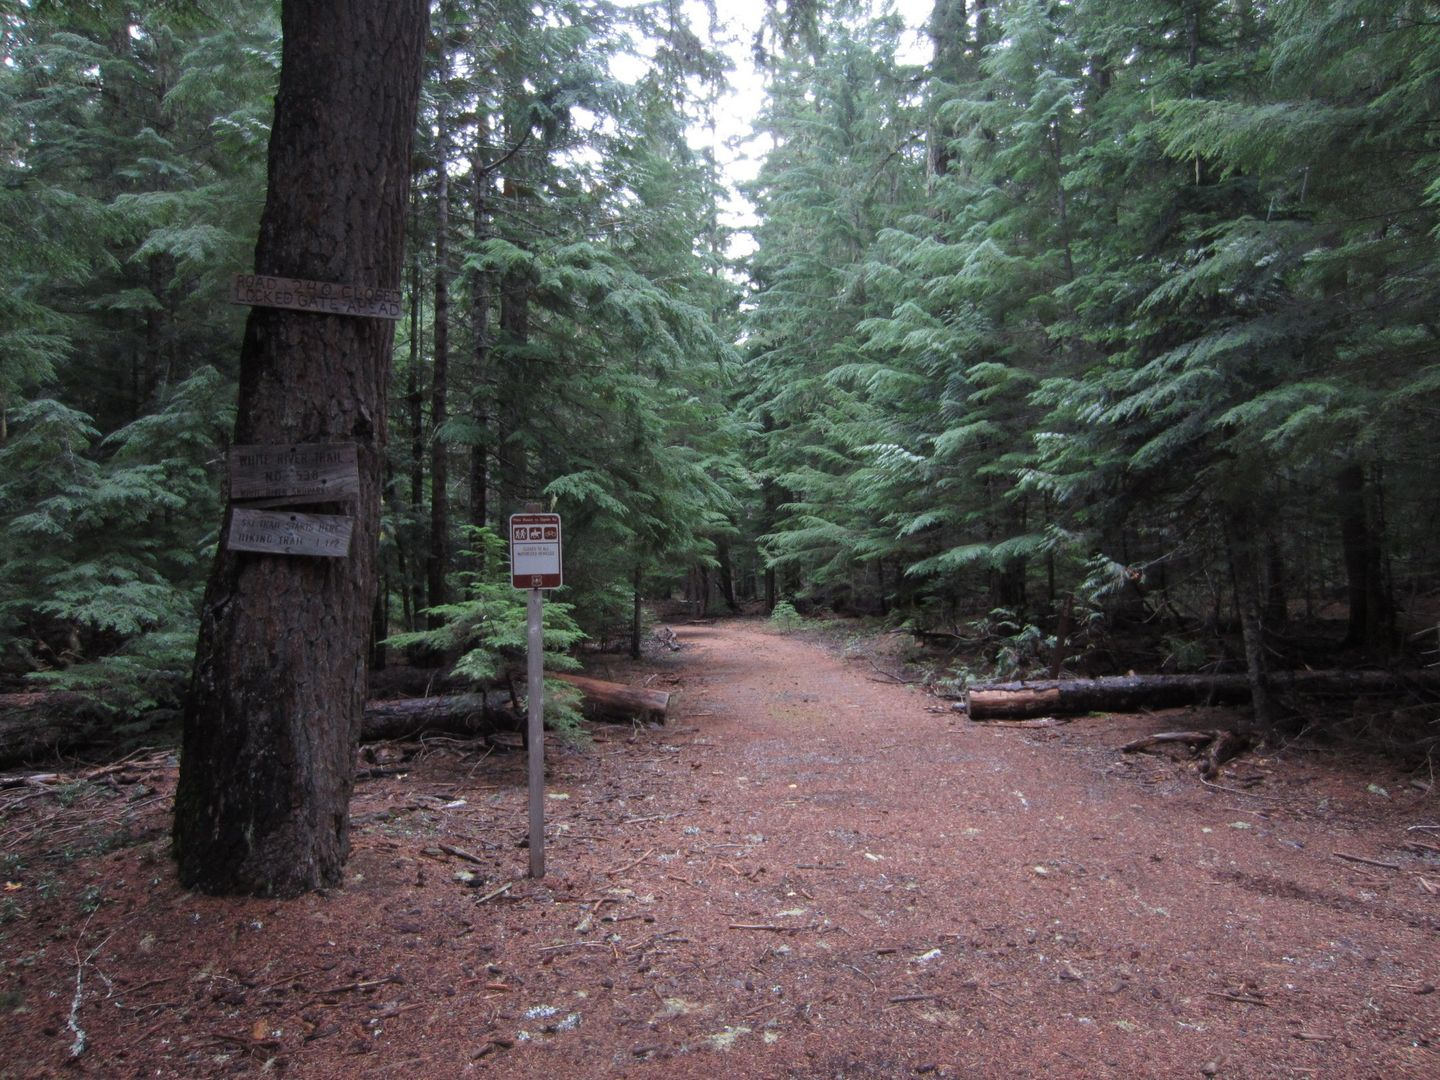 Barlow Trail - Waypoint 38: Continue Straight